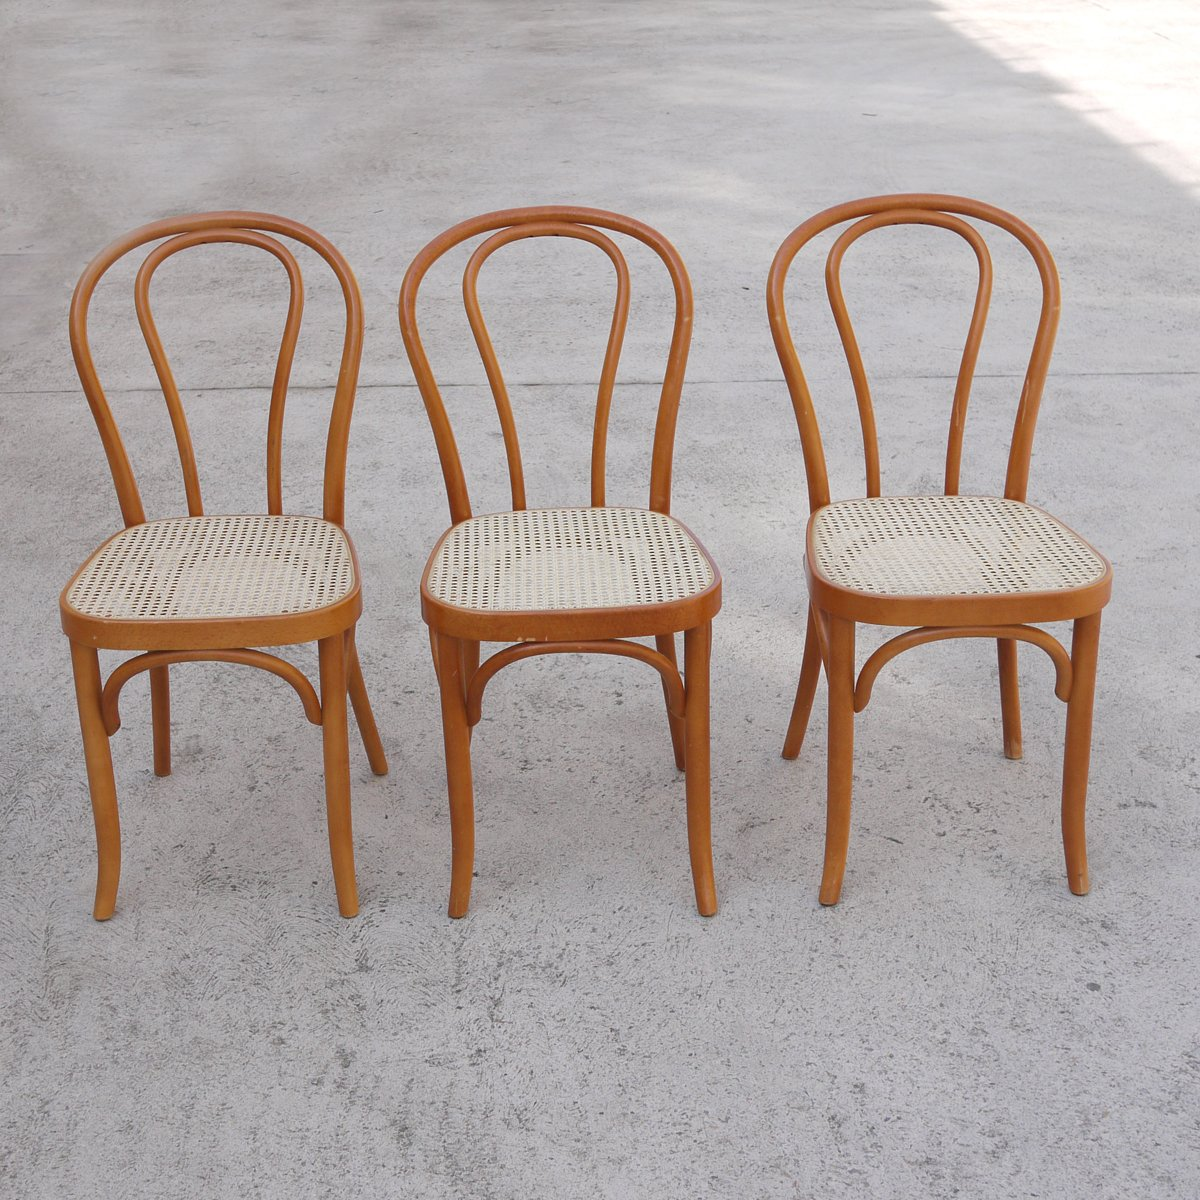 Fullsize Of Rattan Dining Chairs